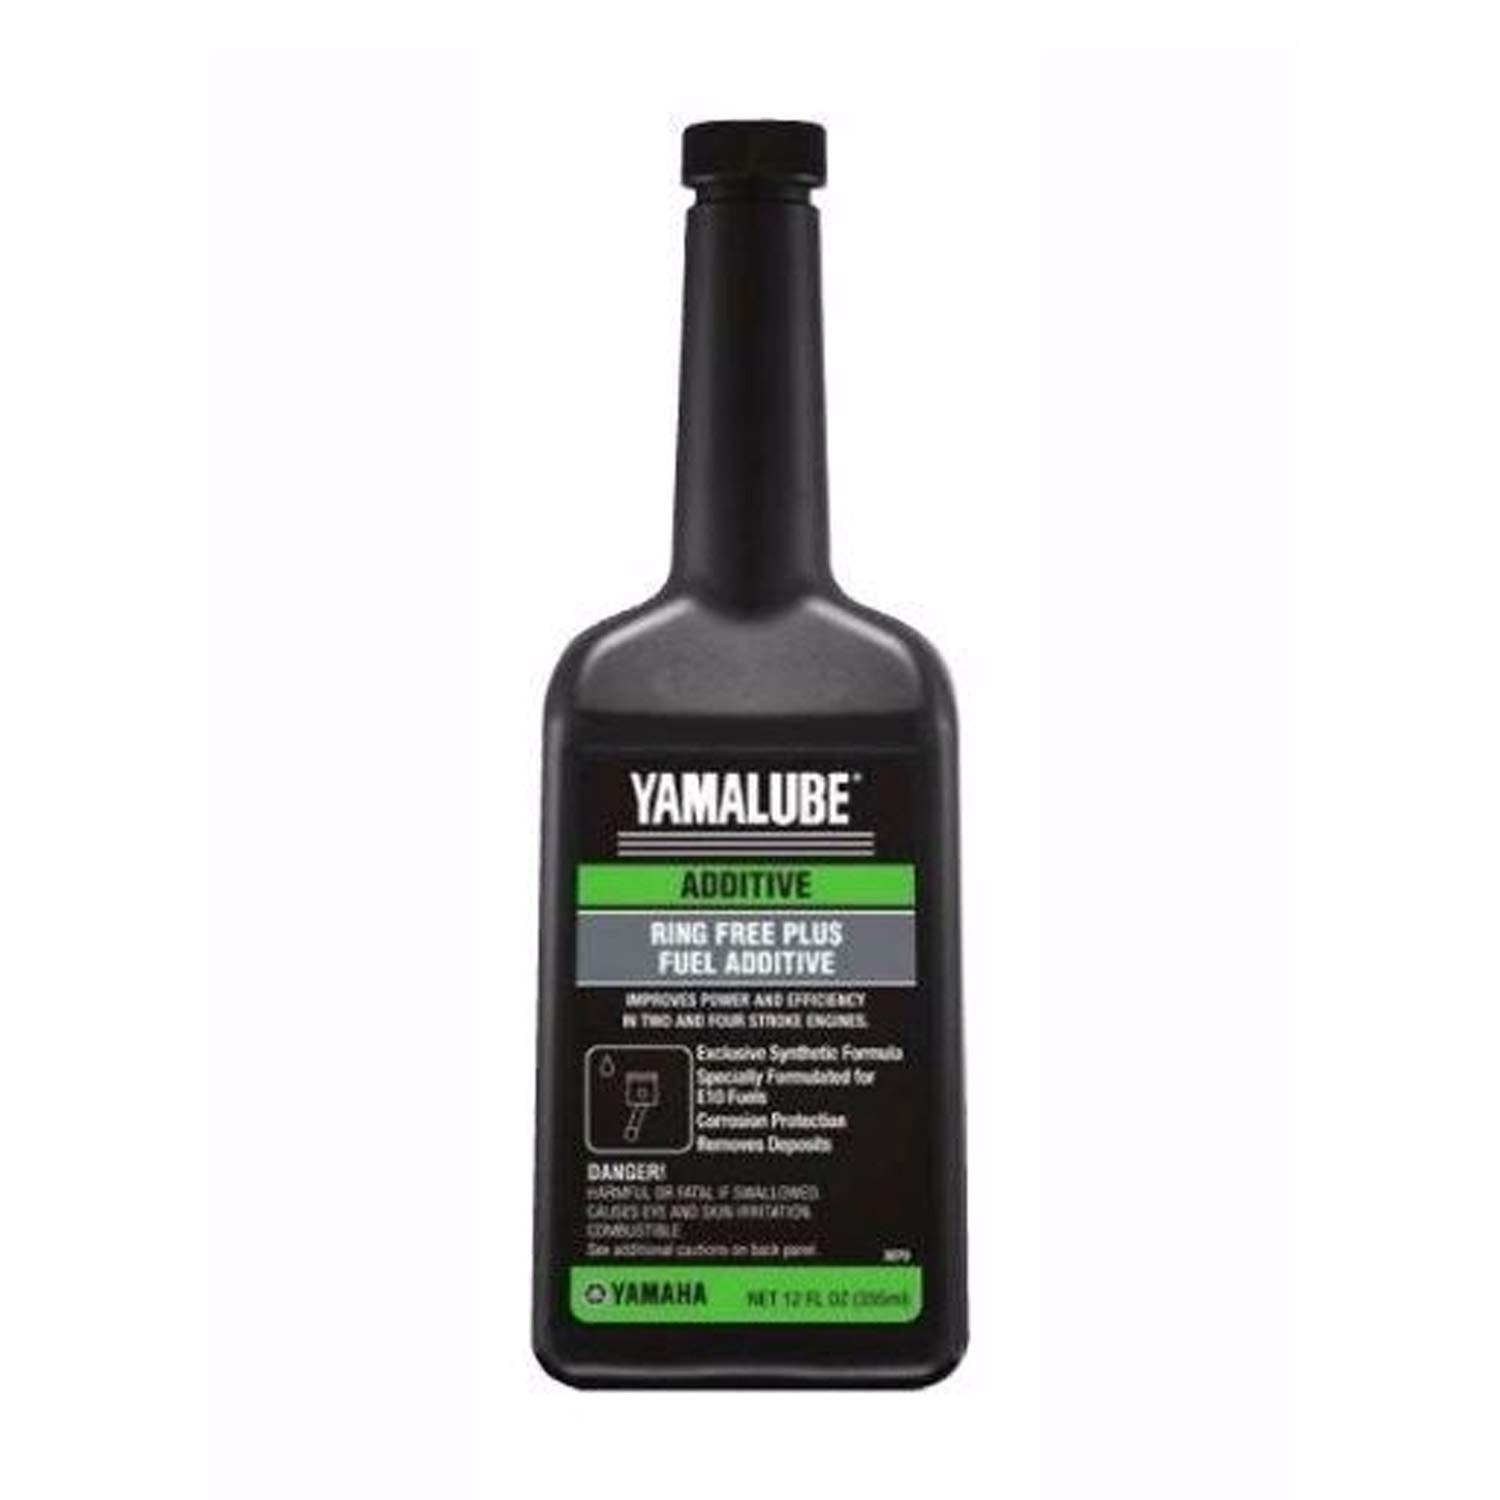 Yamaha Yamalube Ring Free Plus Fuel Additive ACC-RNGFR-PL-12 by Yamaha